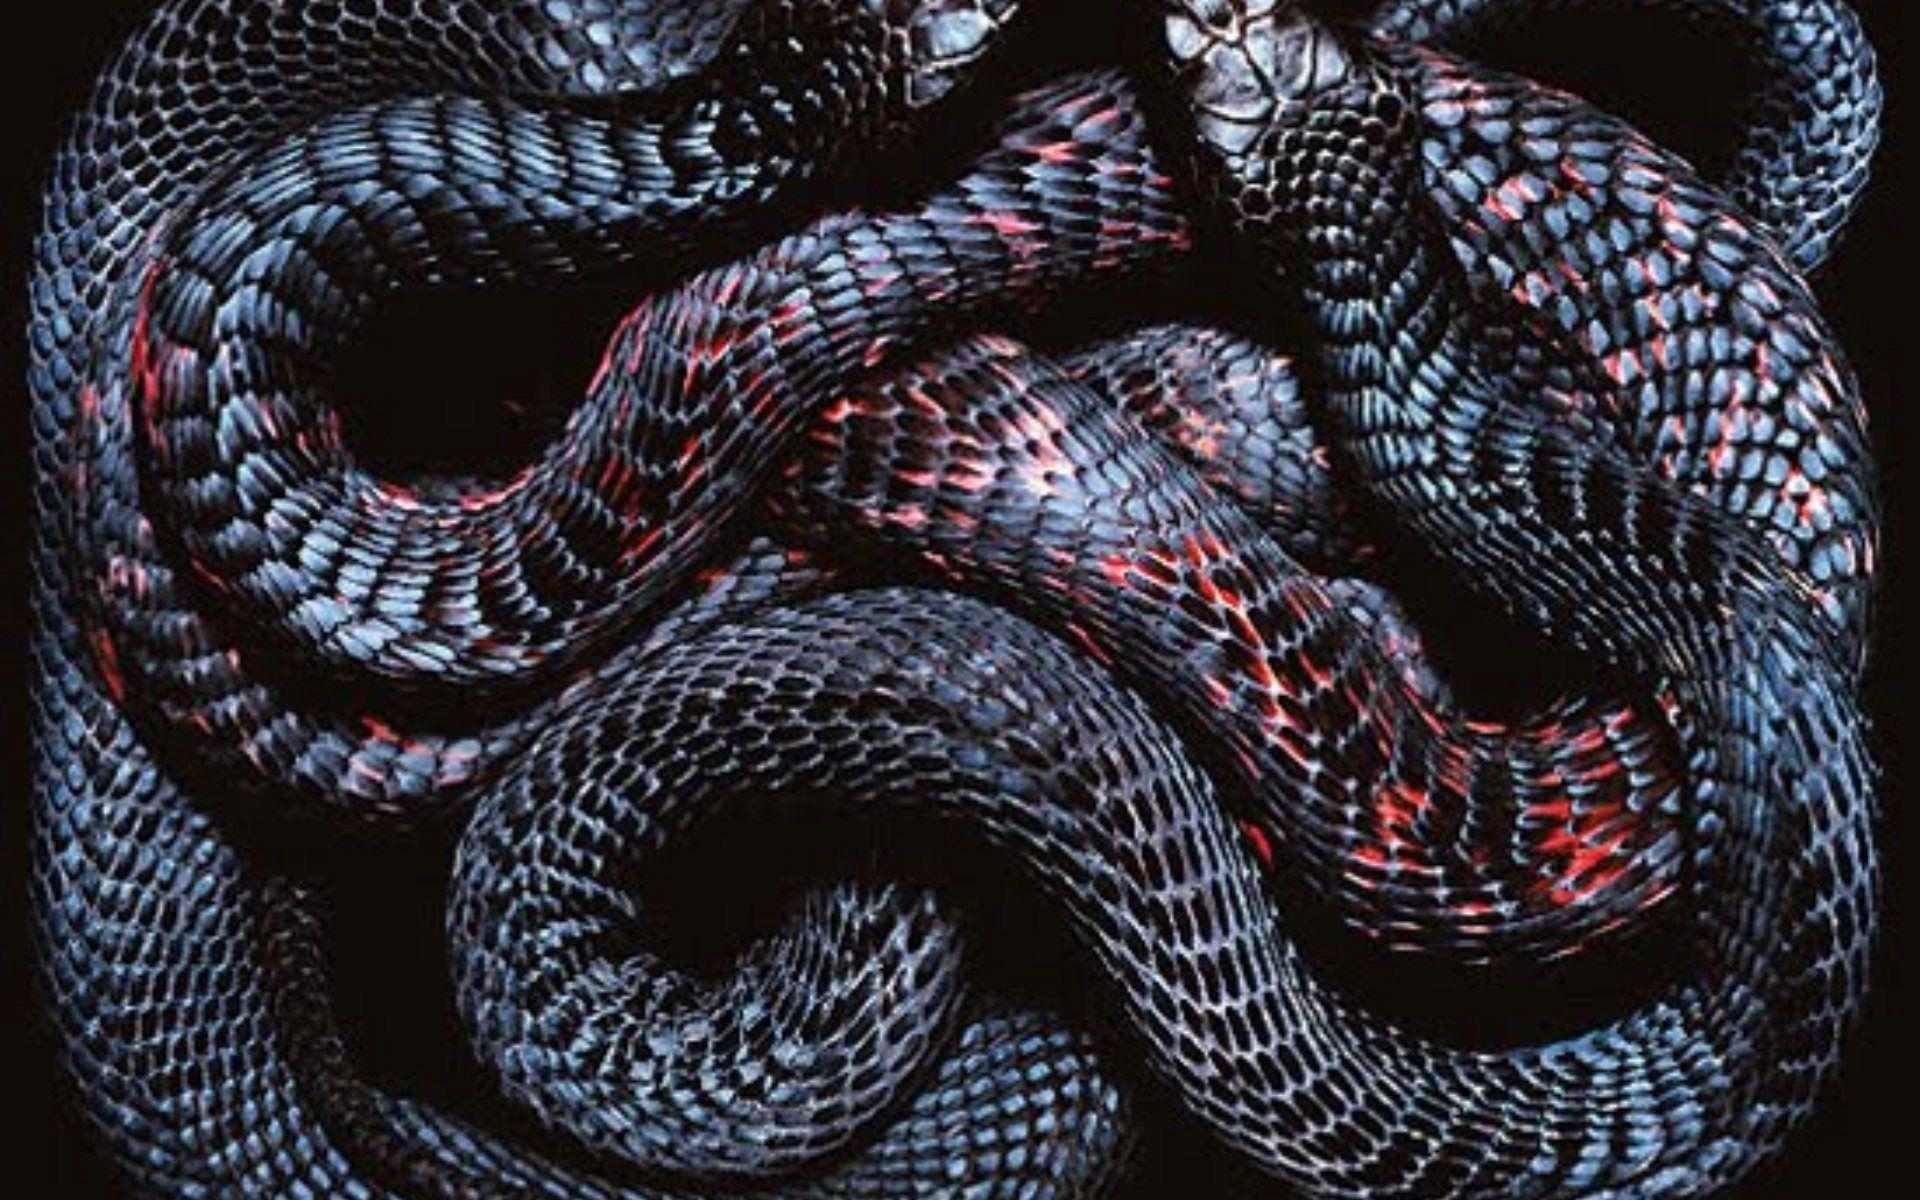 Snakes Wallpapers Wallpaper Cave HD Wallpapers Download Free Images Wallpaper [1000image.com]